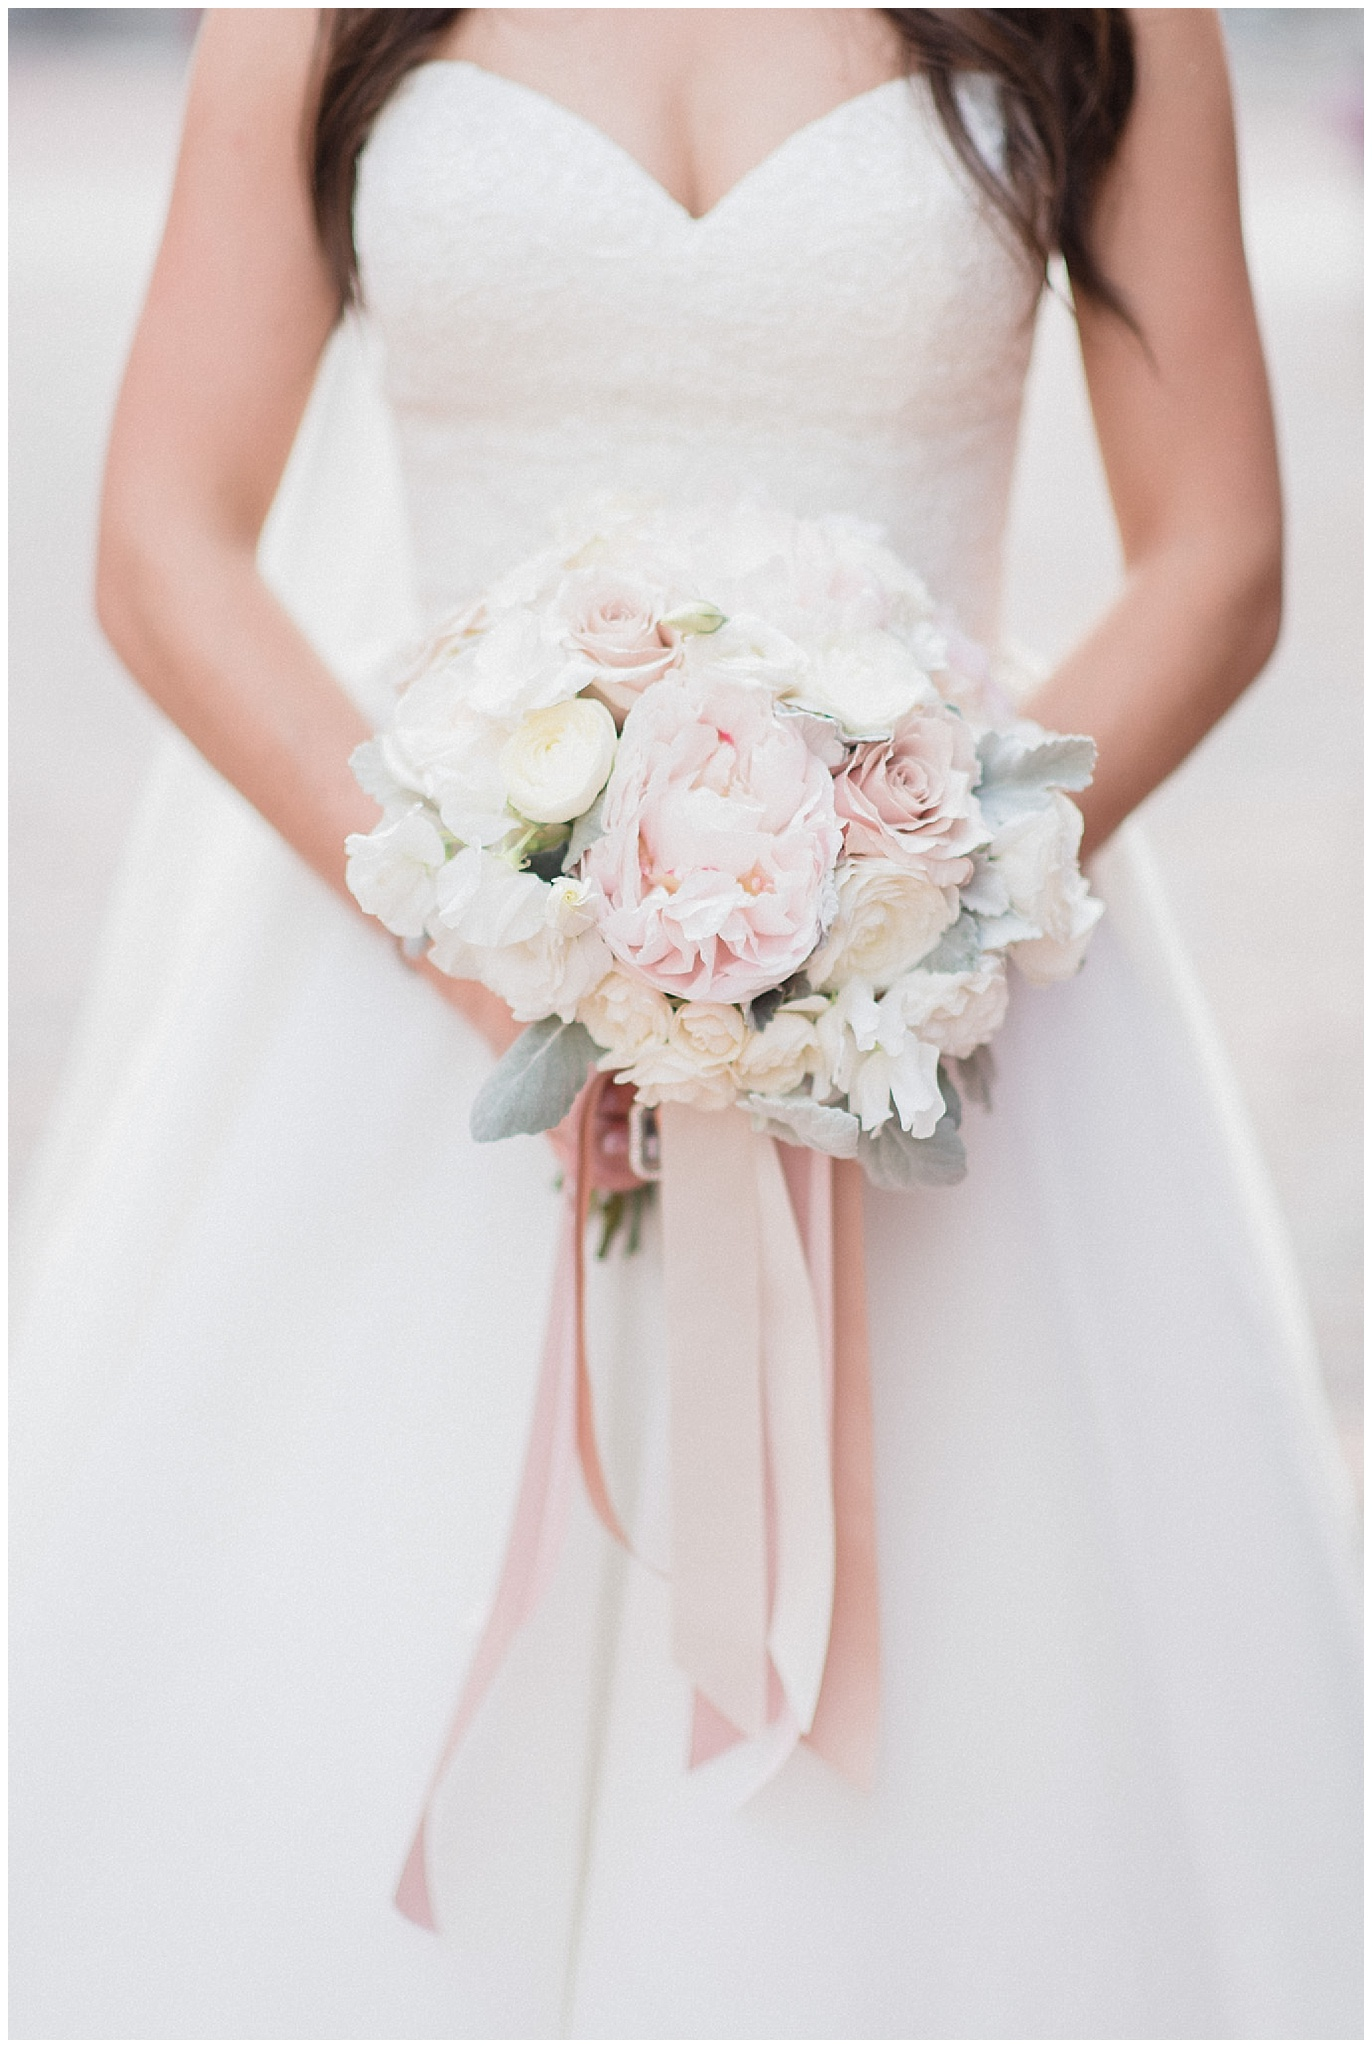 Blush, cream and soft green bride's bouquet | Distillery District wedding by Jenn Kavanagh Photography